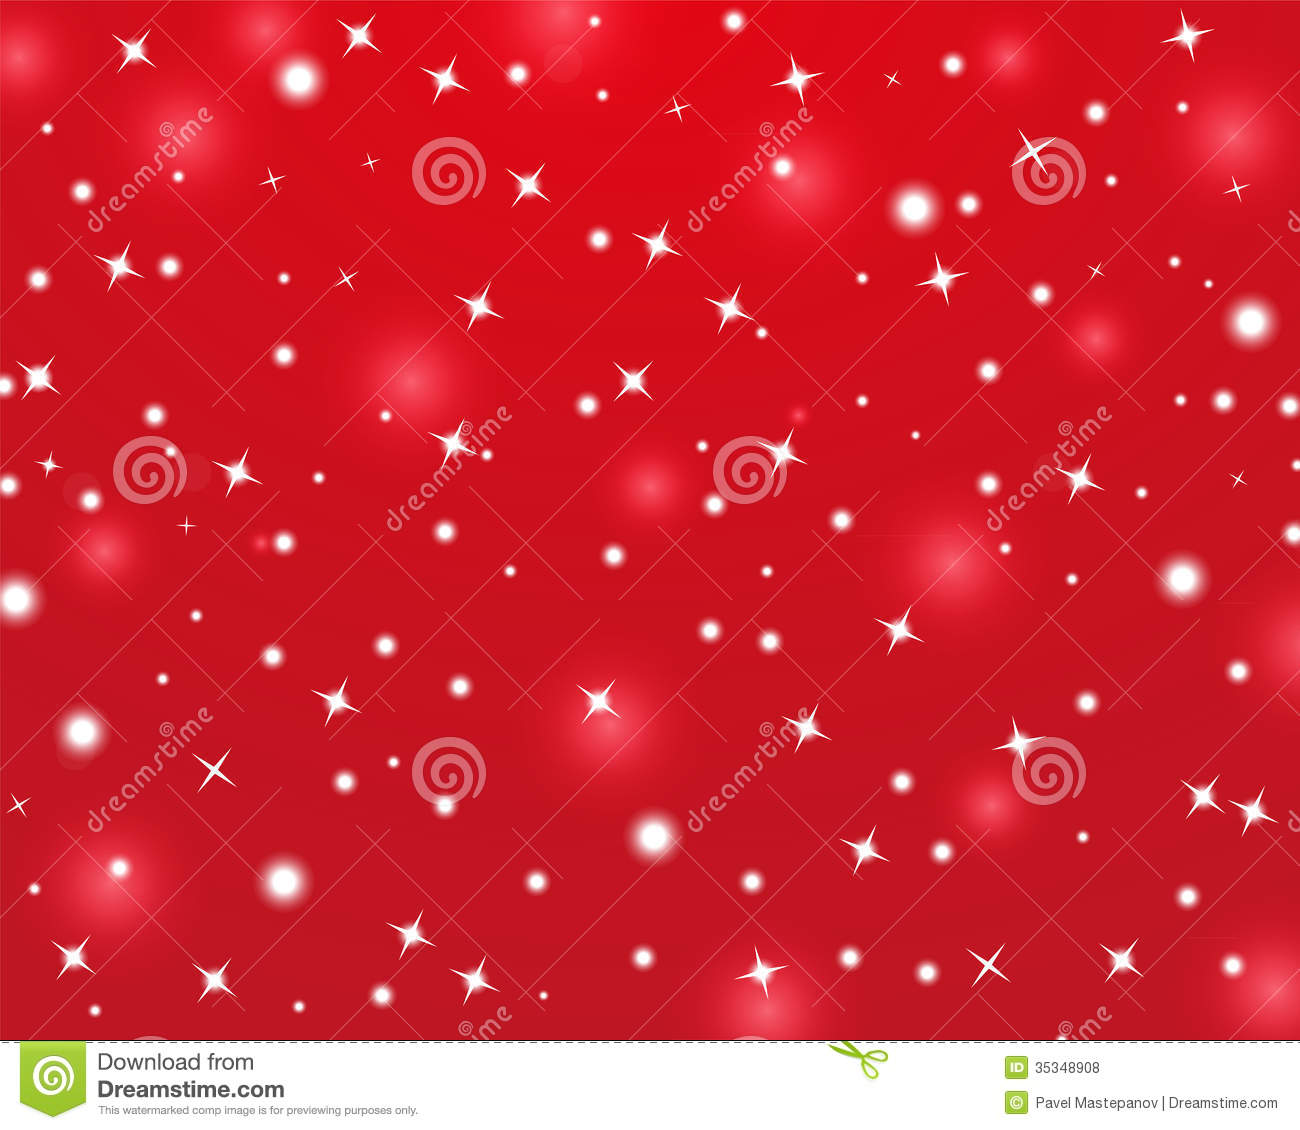 Red Christmas Background Royalty Free Stock Photos - Image: 35348908